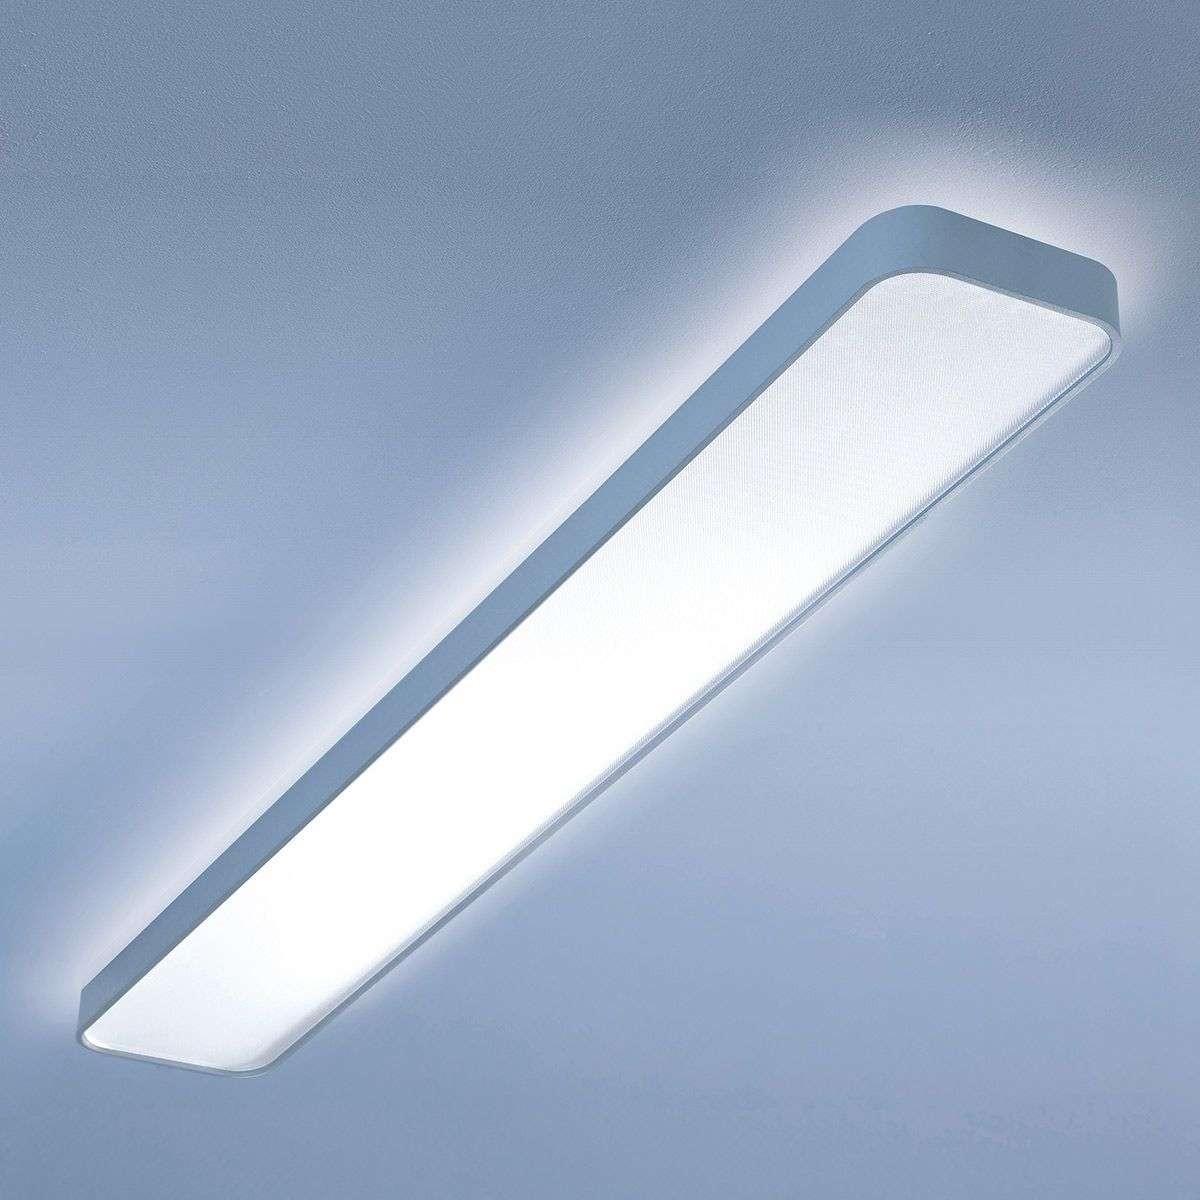 Caleo x1 long led ceiling light warm white lights caleo x1 long led ceiling light warm white 120 cm 6033485 31 arubaitofo Image collections